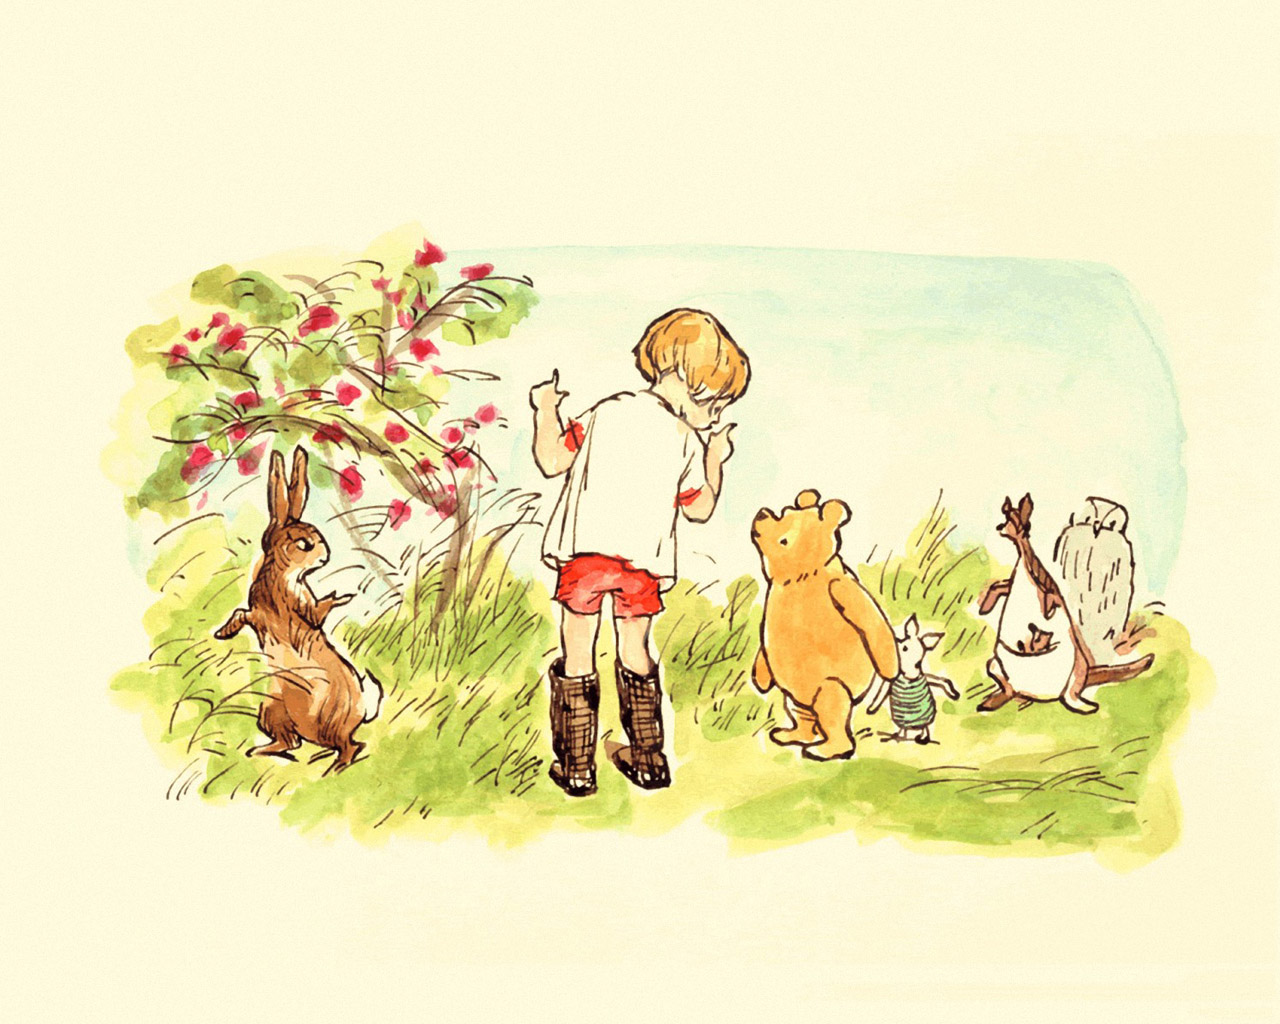 Free Download Winnie The Pooh Wallpaper 1280x1024 Wallpapers 1280x1024 Wallpapers 1280x1024 For Your Desktop Mobile Tablet Explore 50 Winnie The Pooh Free Wallpaper Winnie The Pooh Desktop Wallpaper Classic